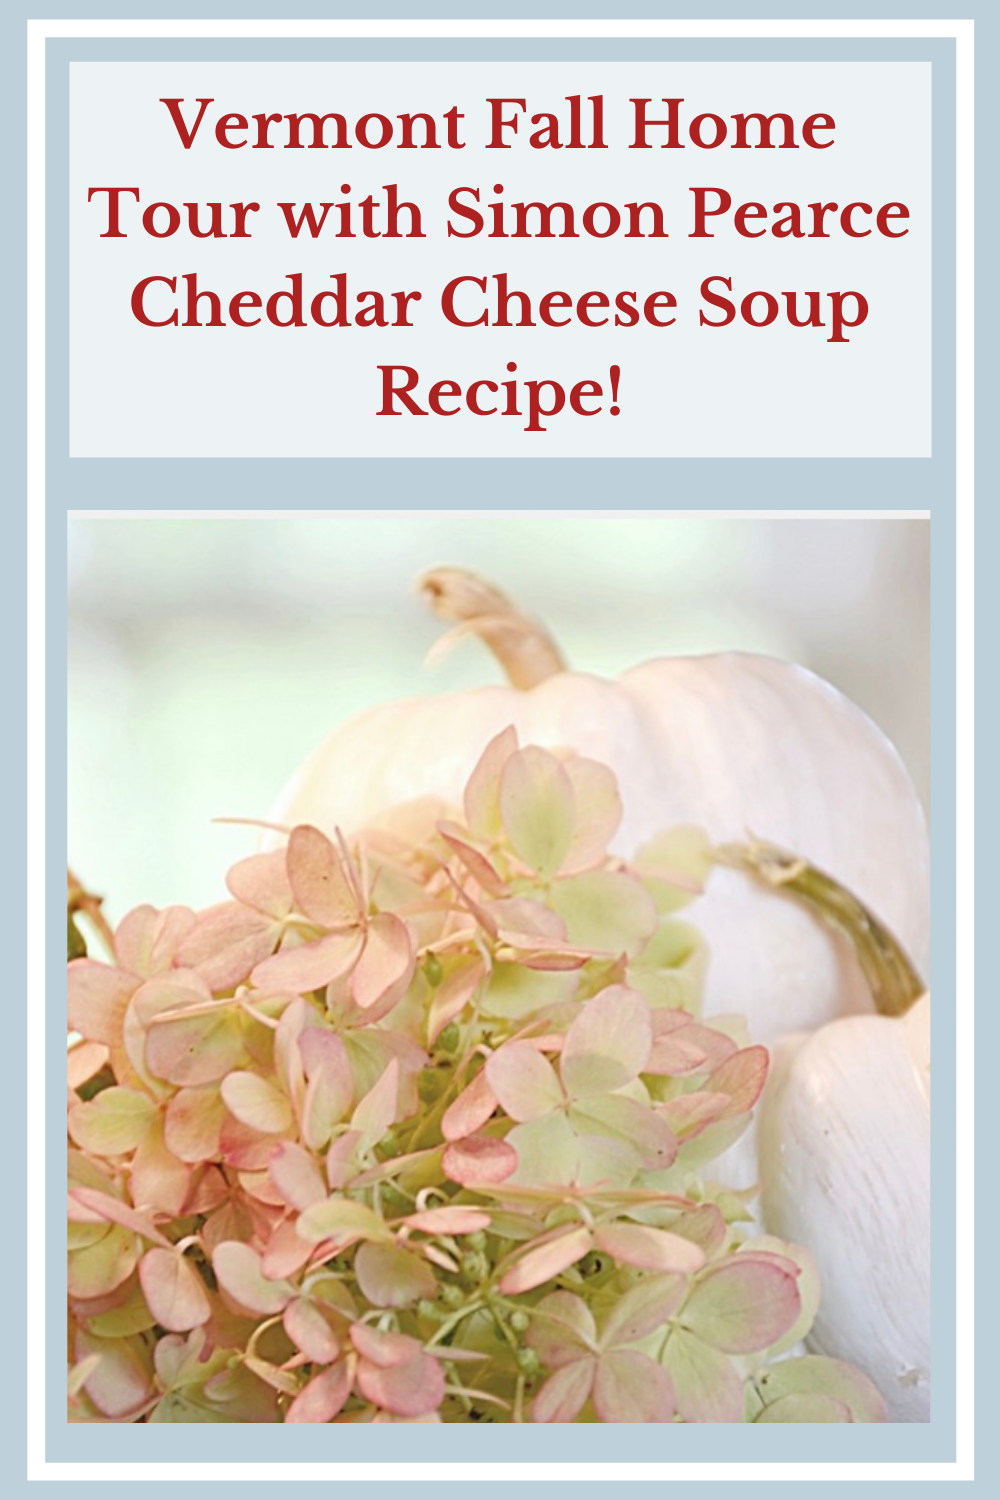 Vermont Fall Home Tour with Simon Pearce Cheddar Cheese Soup Recipe